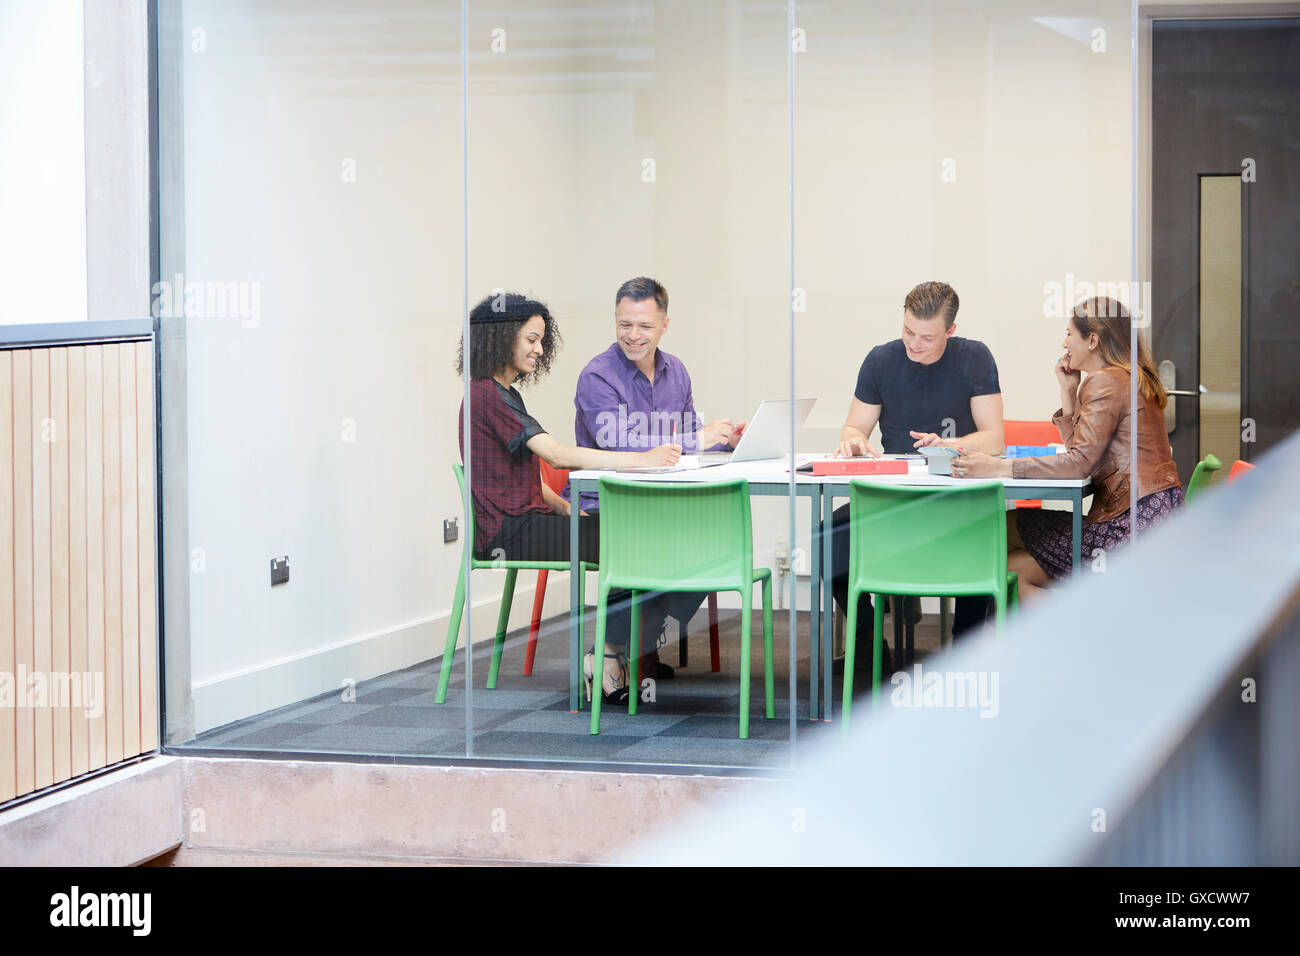 Design team meeting at design studio boardroom table - Stock Image